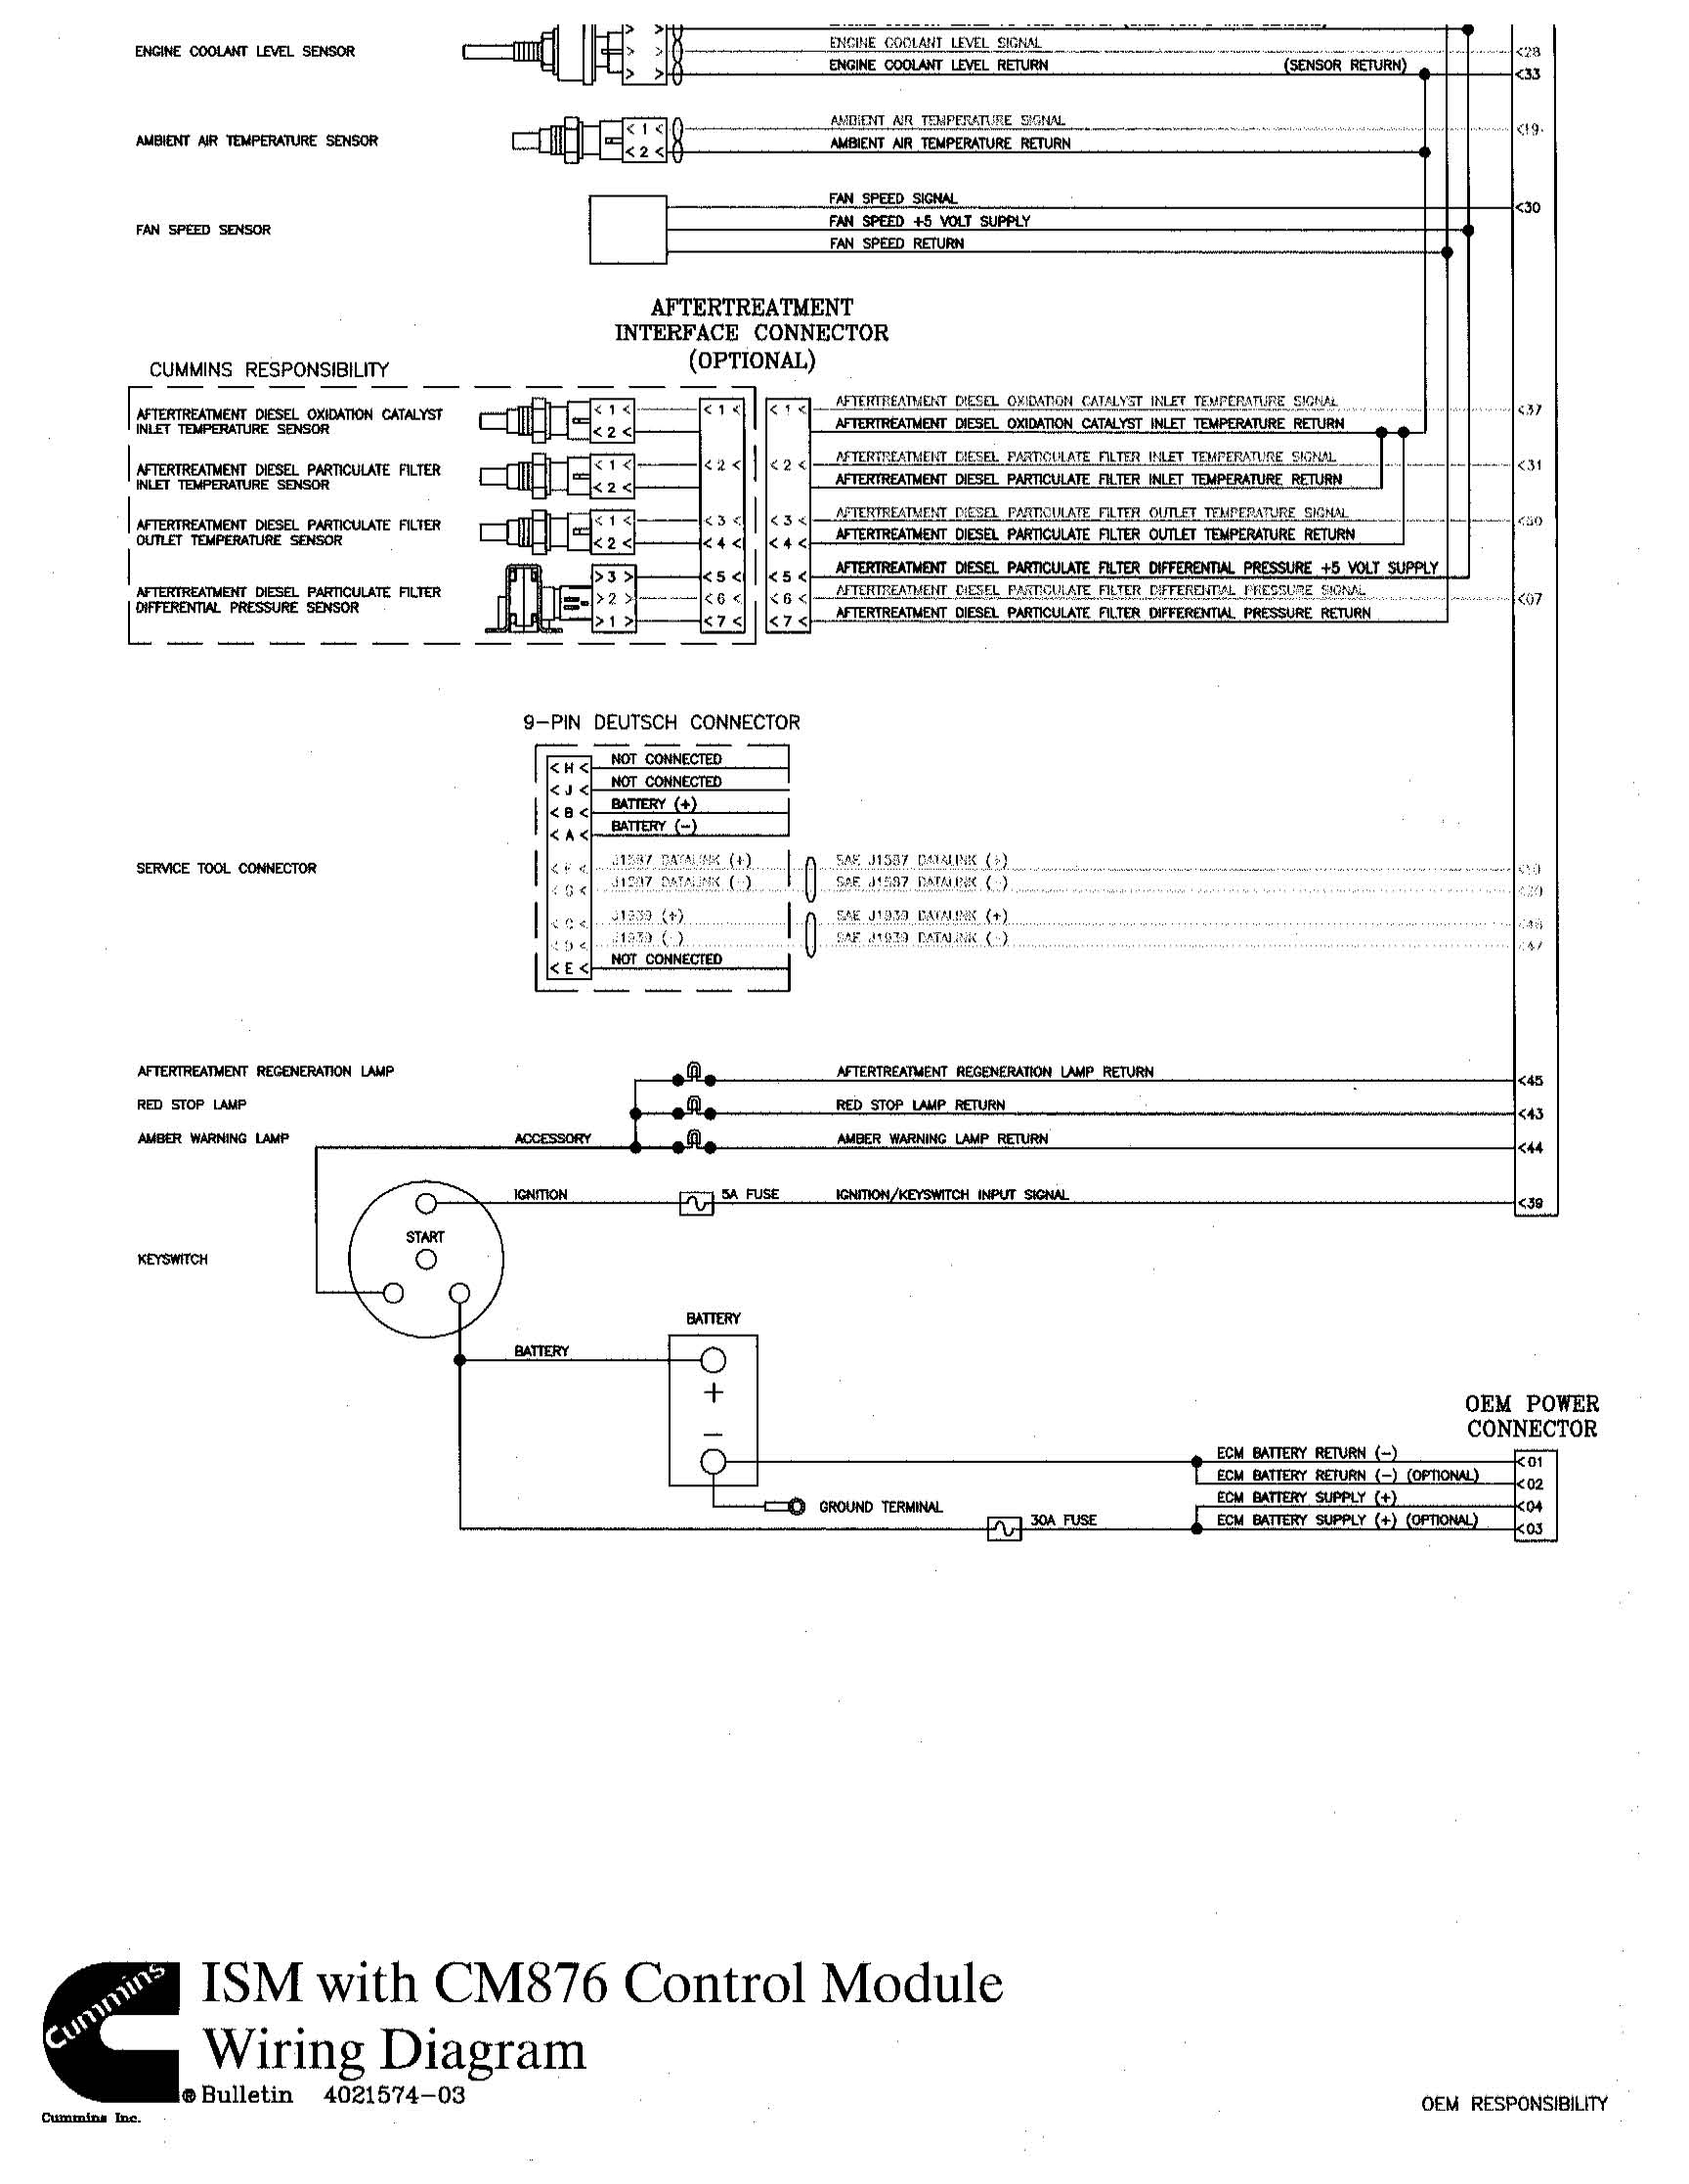 i need ecm pinout for ism cummins engine engine computer graphic